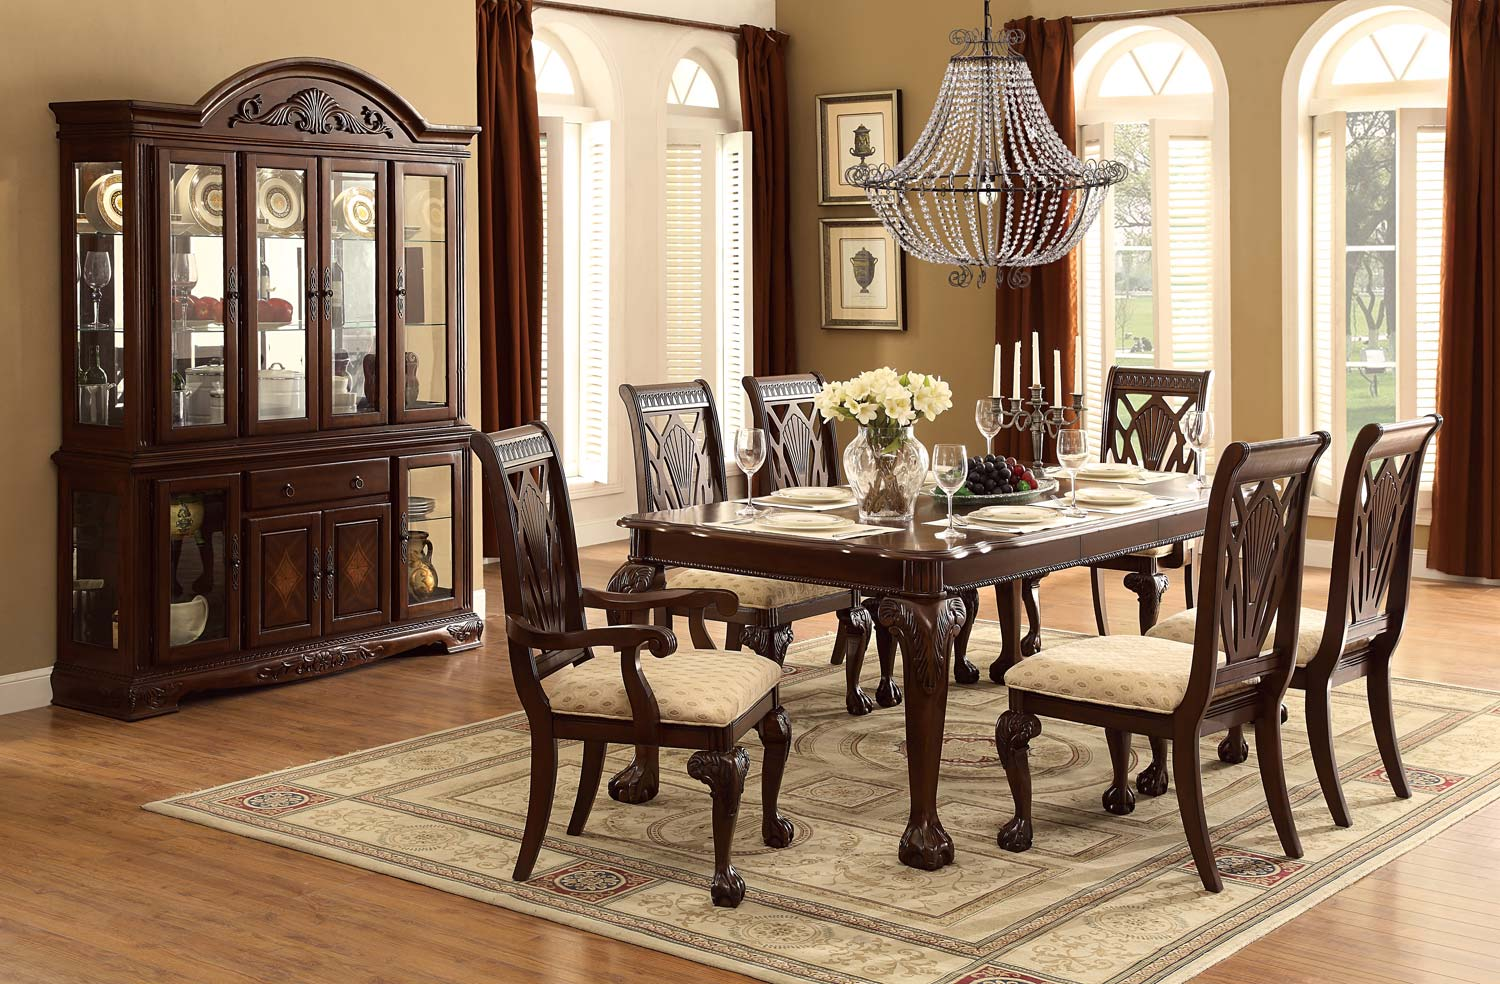 Homelegance Norwich Leg Dining Table Set   Beige Fabric   Warm Cherry